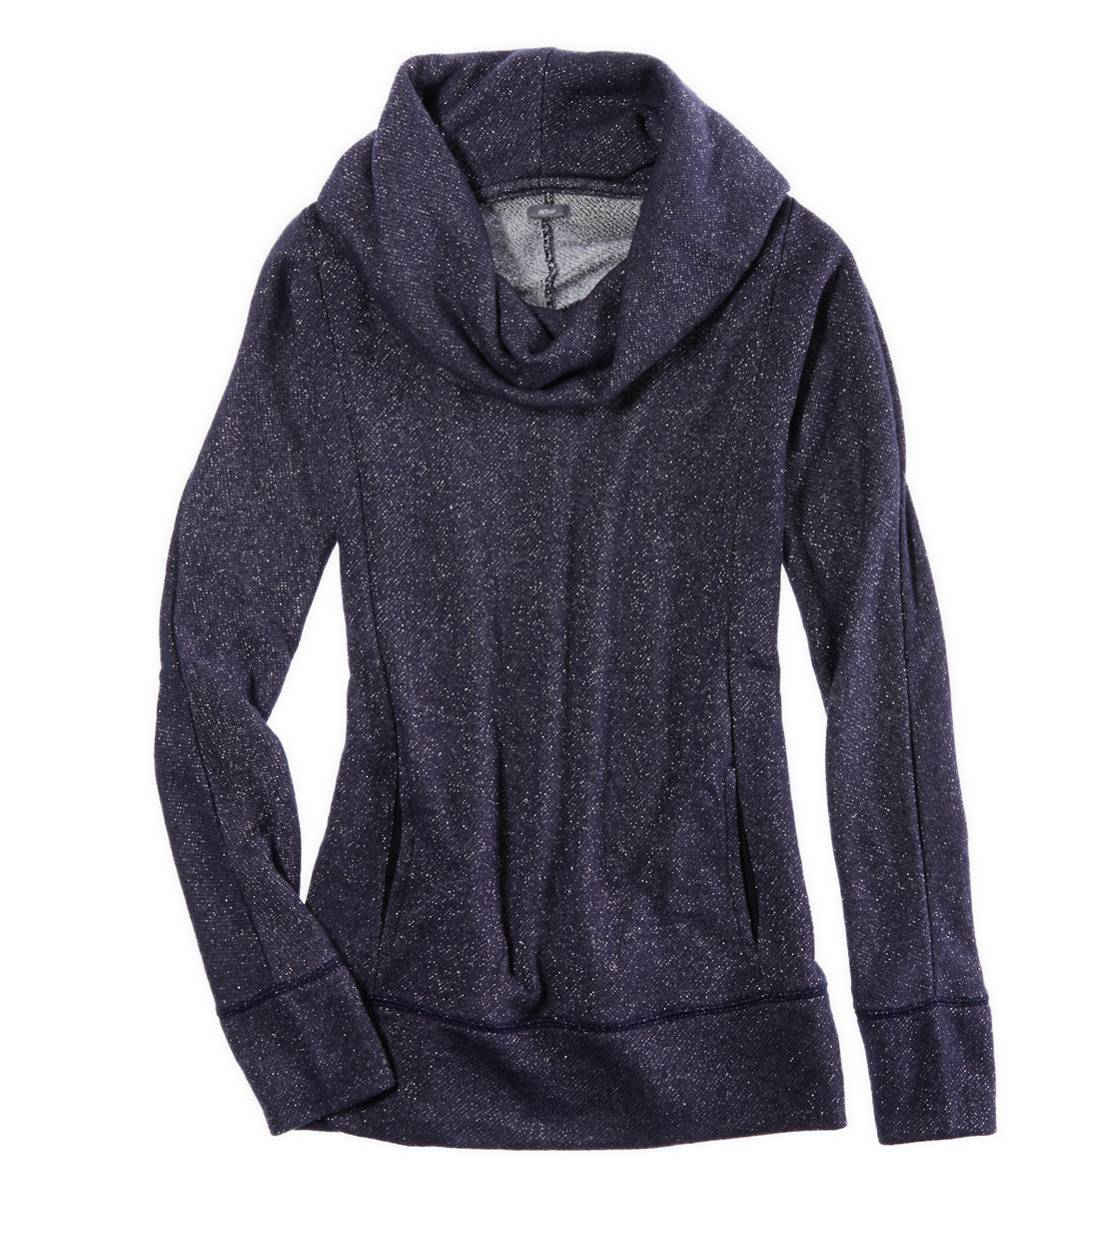 Royal Navy Aerie Sparkle Cowl Neck Sweatshirt